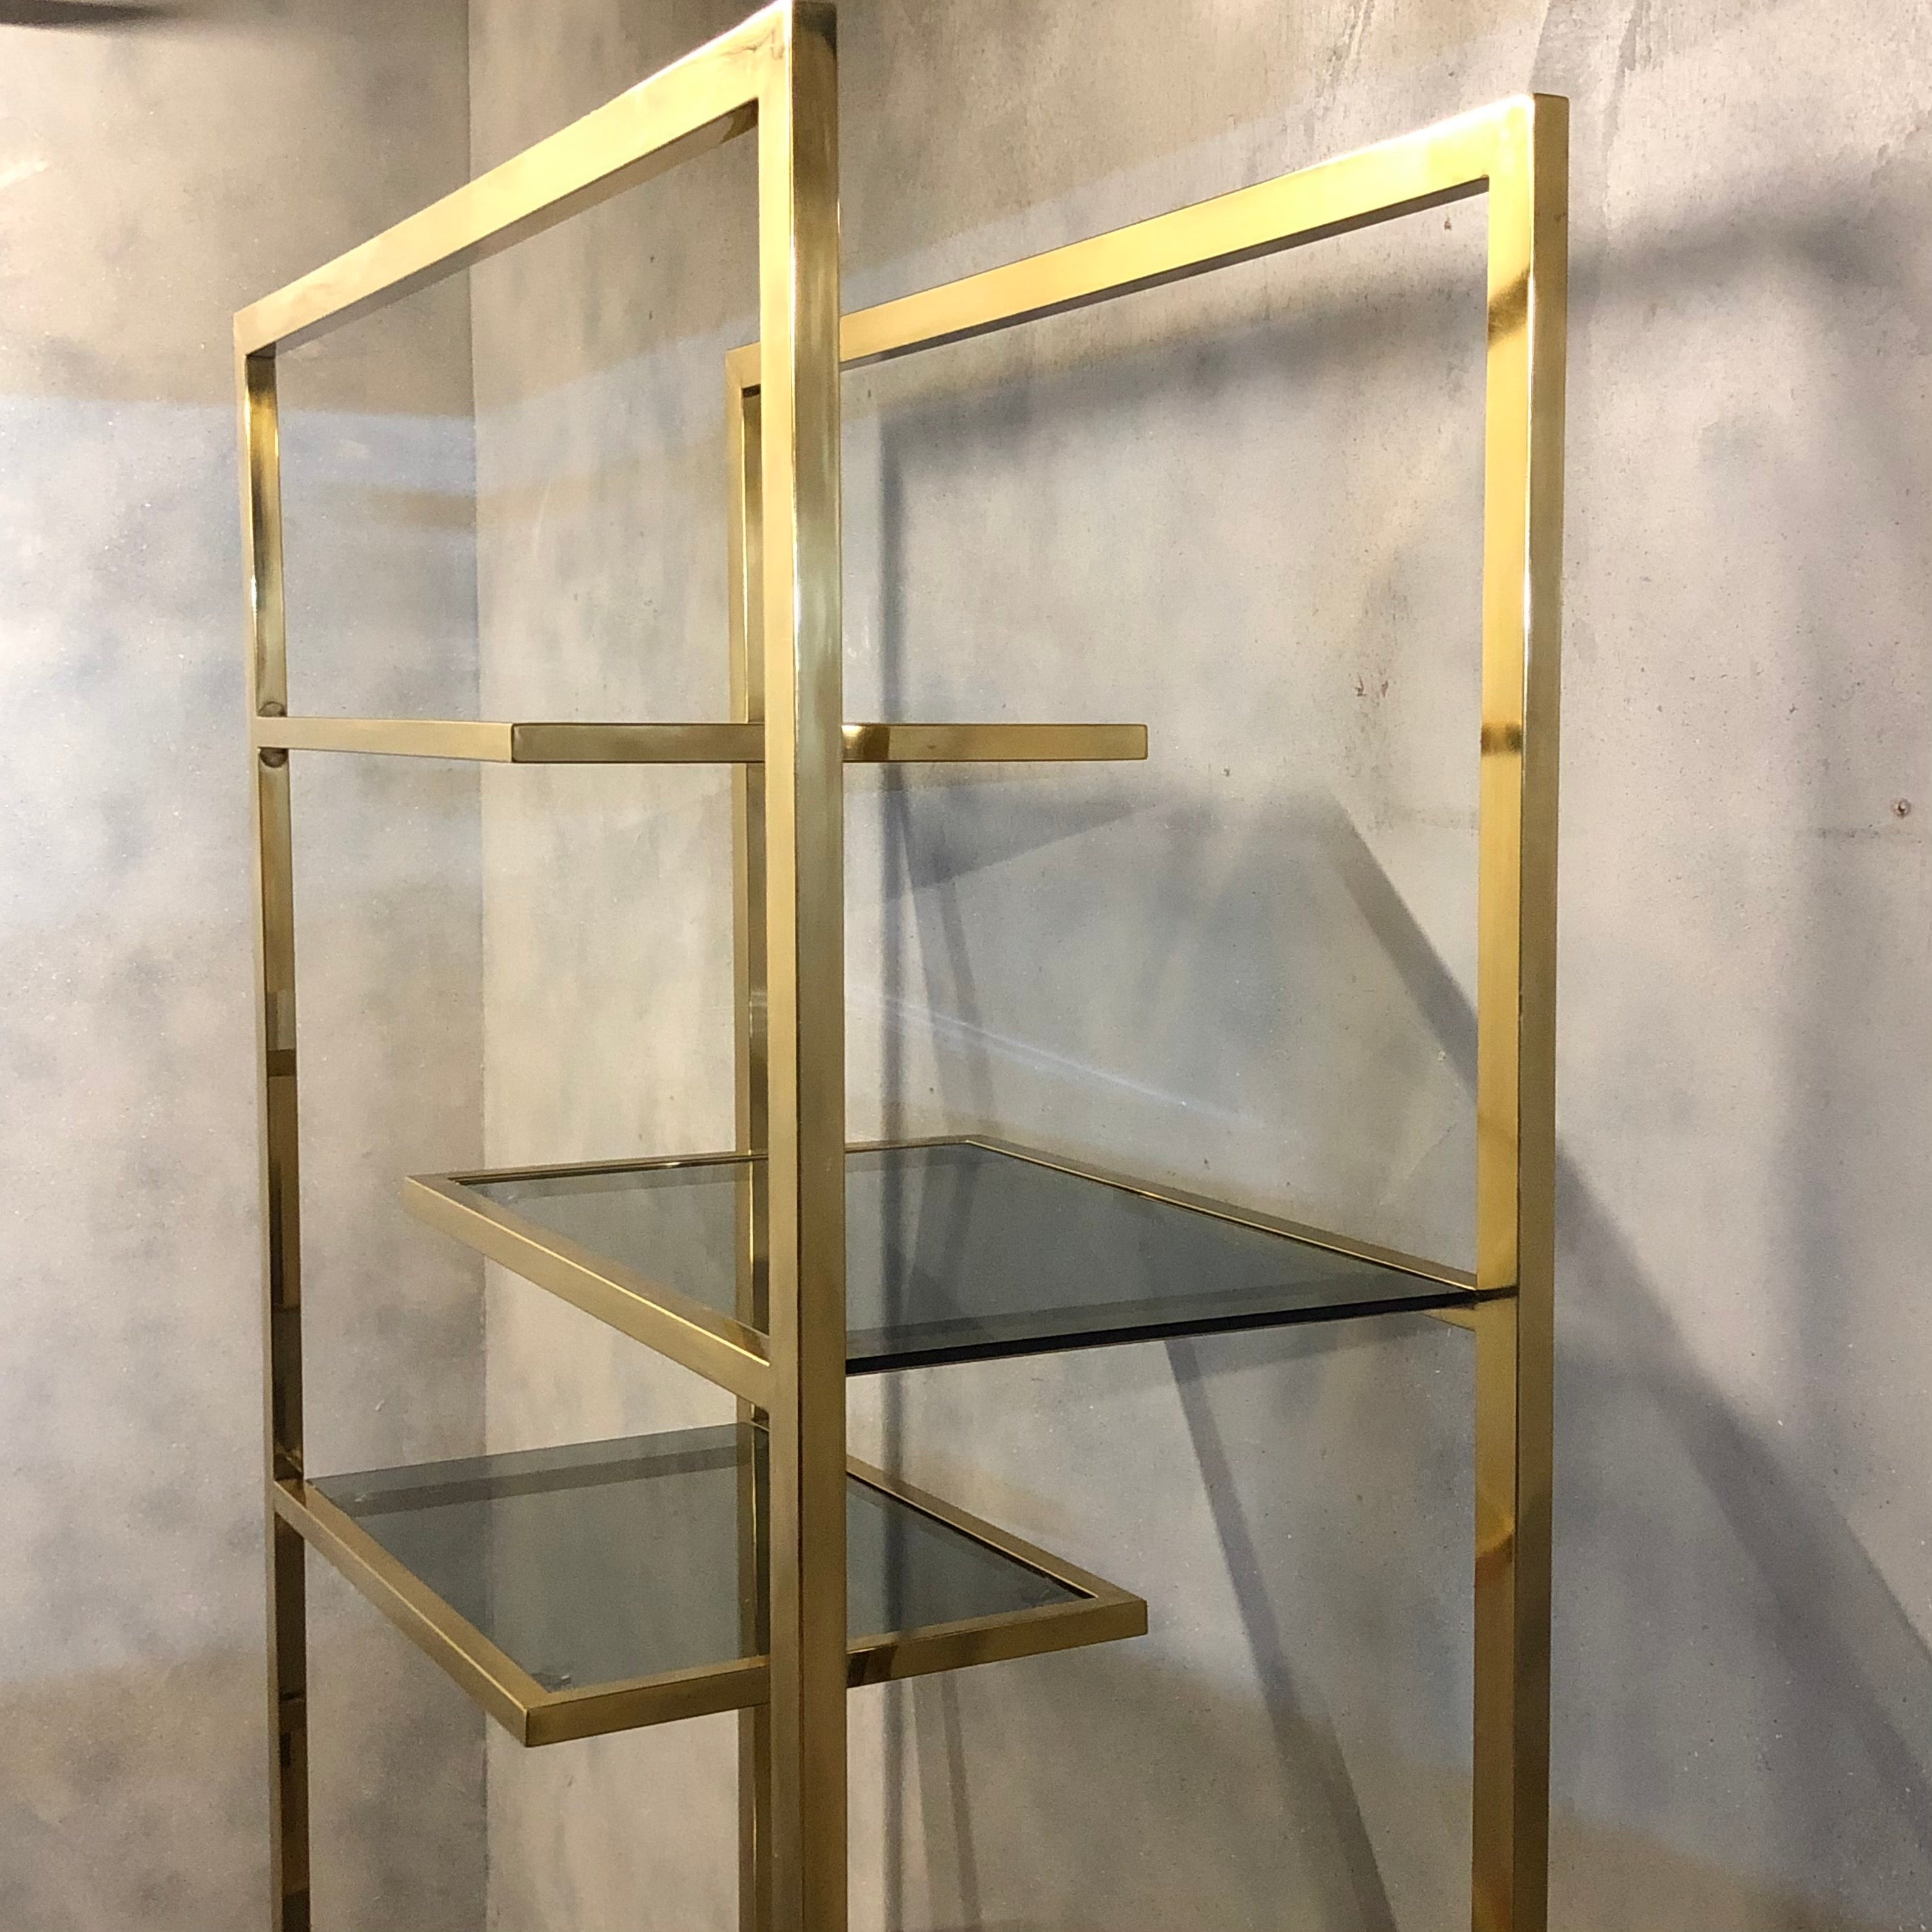 Wall shelving smoked glass and steel